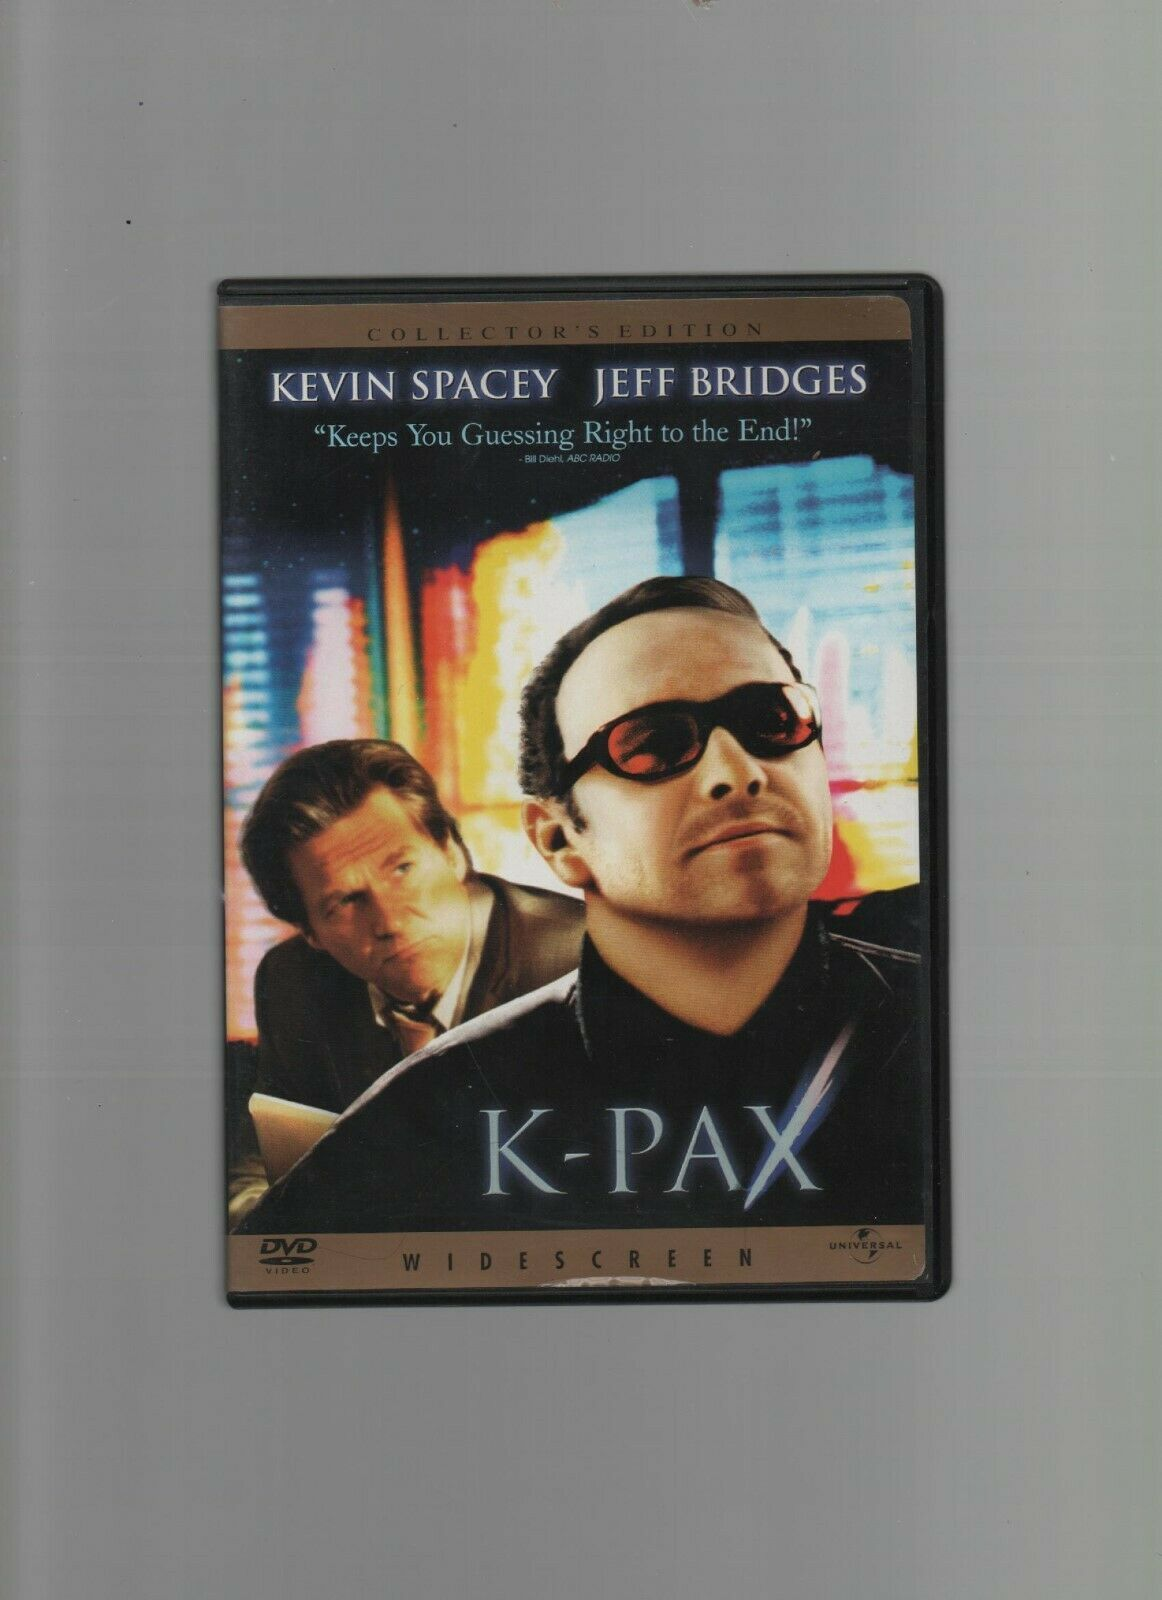 Primary image for K-Pax - Widescreen - Kevin Spacey, Jeff Bridges - DVD 21553 - Universal Pictures